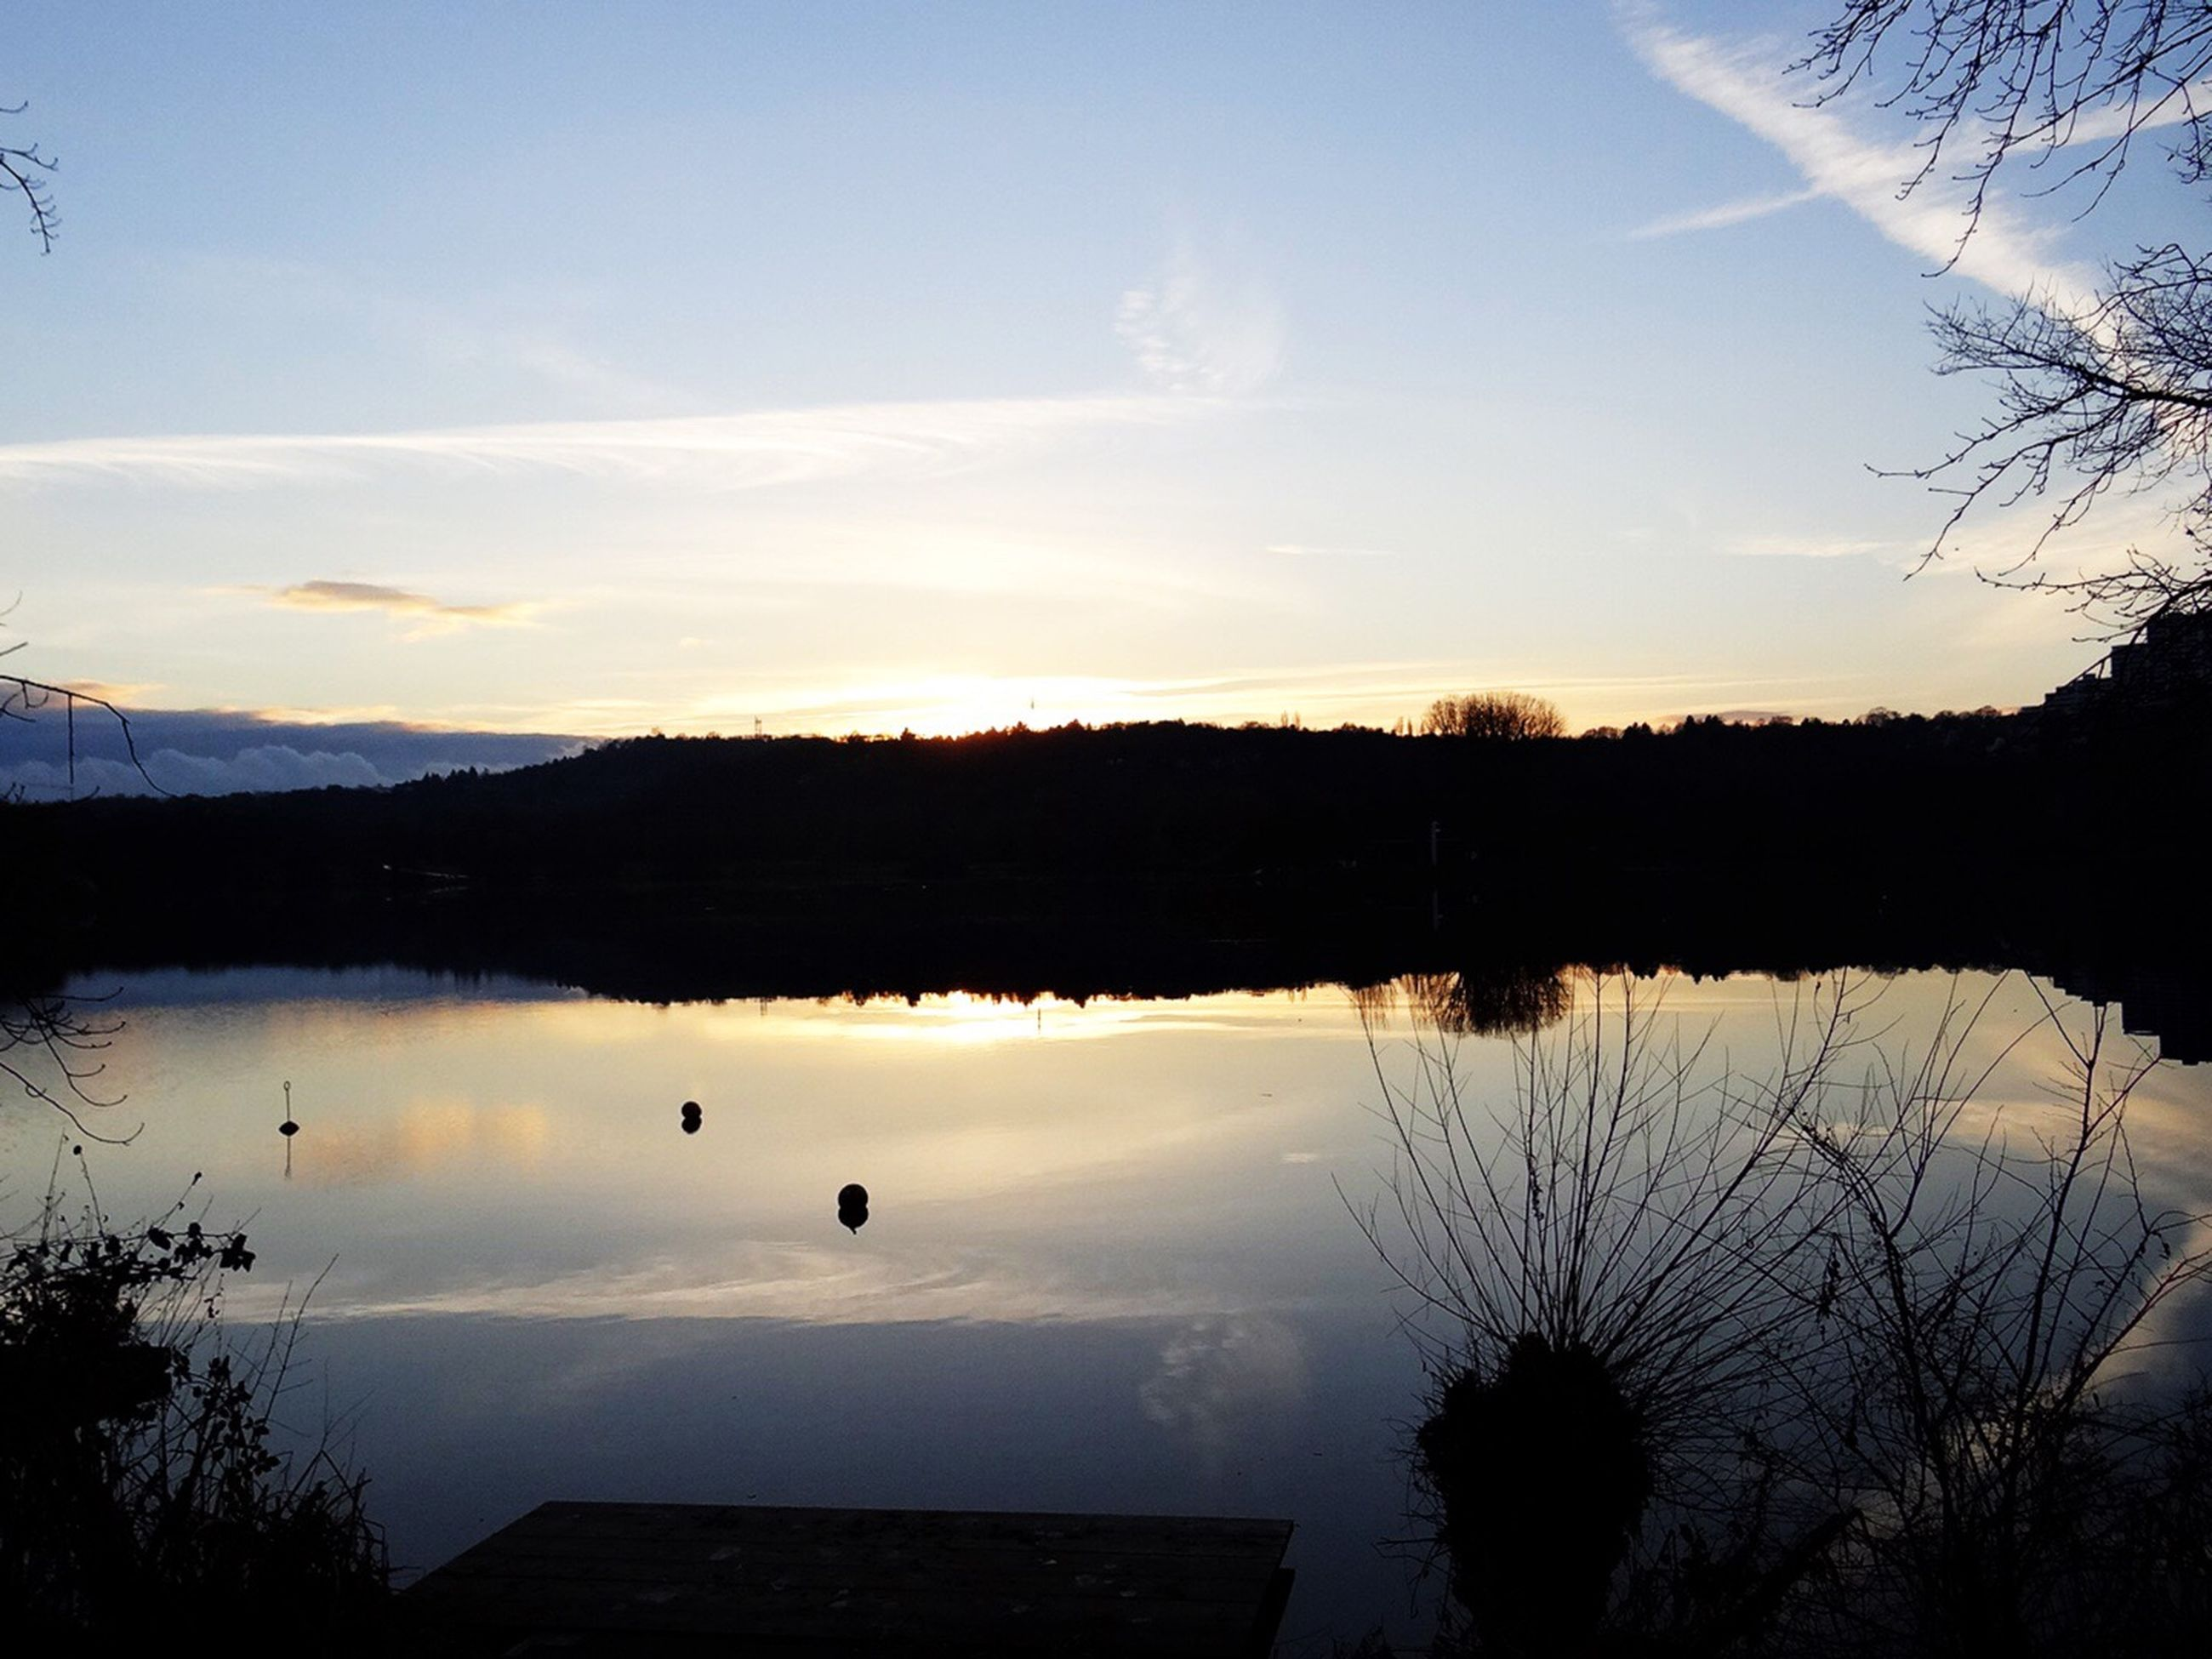 sky, nature, reflection, beauty in nature, water, lake, sunset, scenics, tranquility, silhouette, idyllic, outdoors, tranquil scene, no people, landscape, tree, animal themes, day